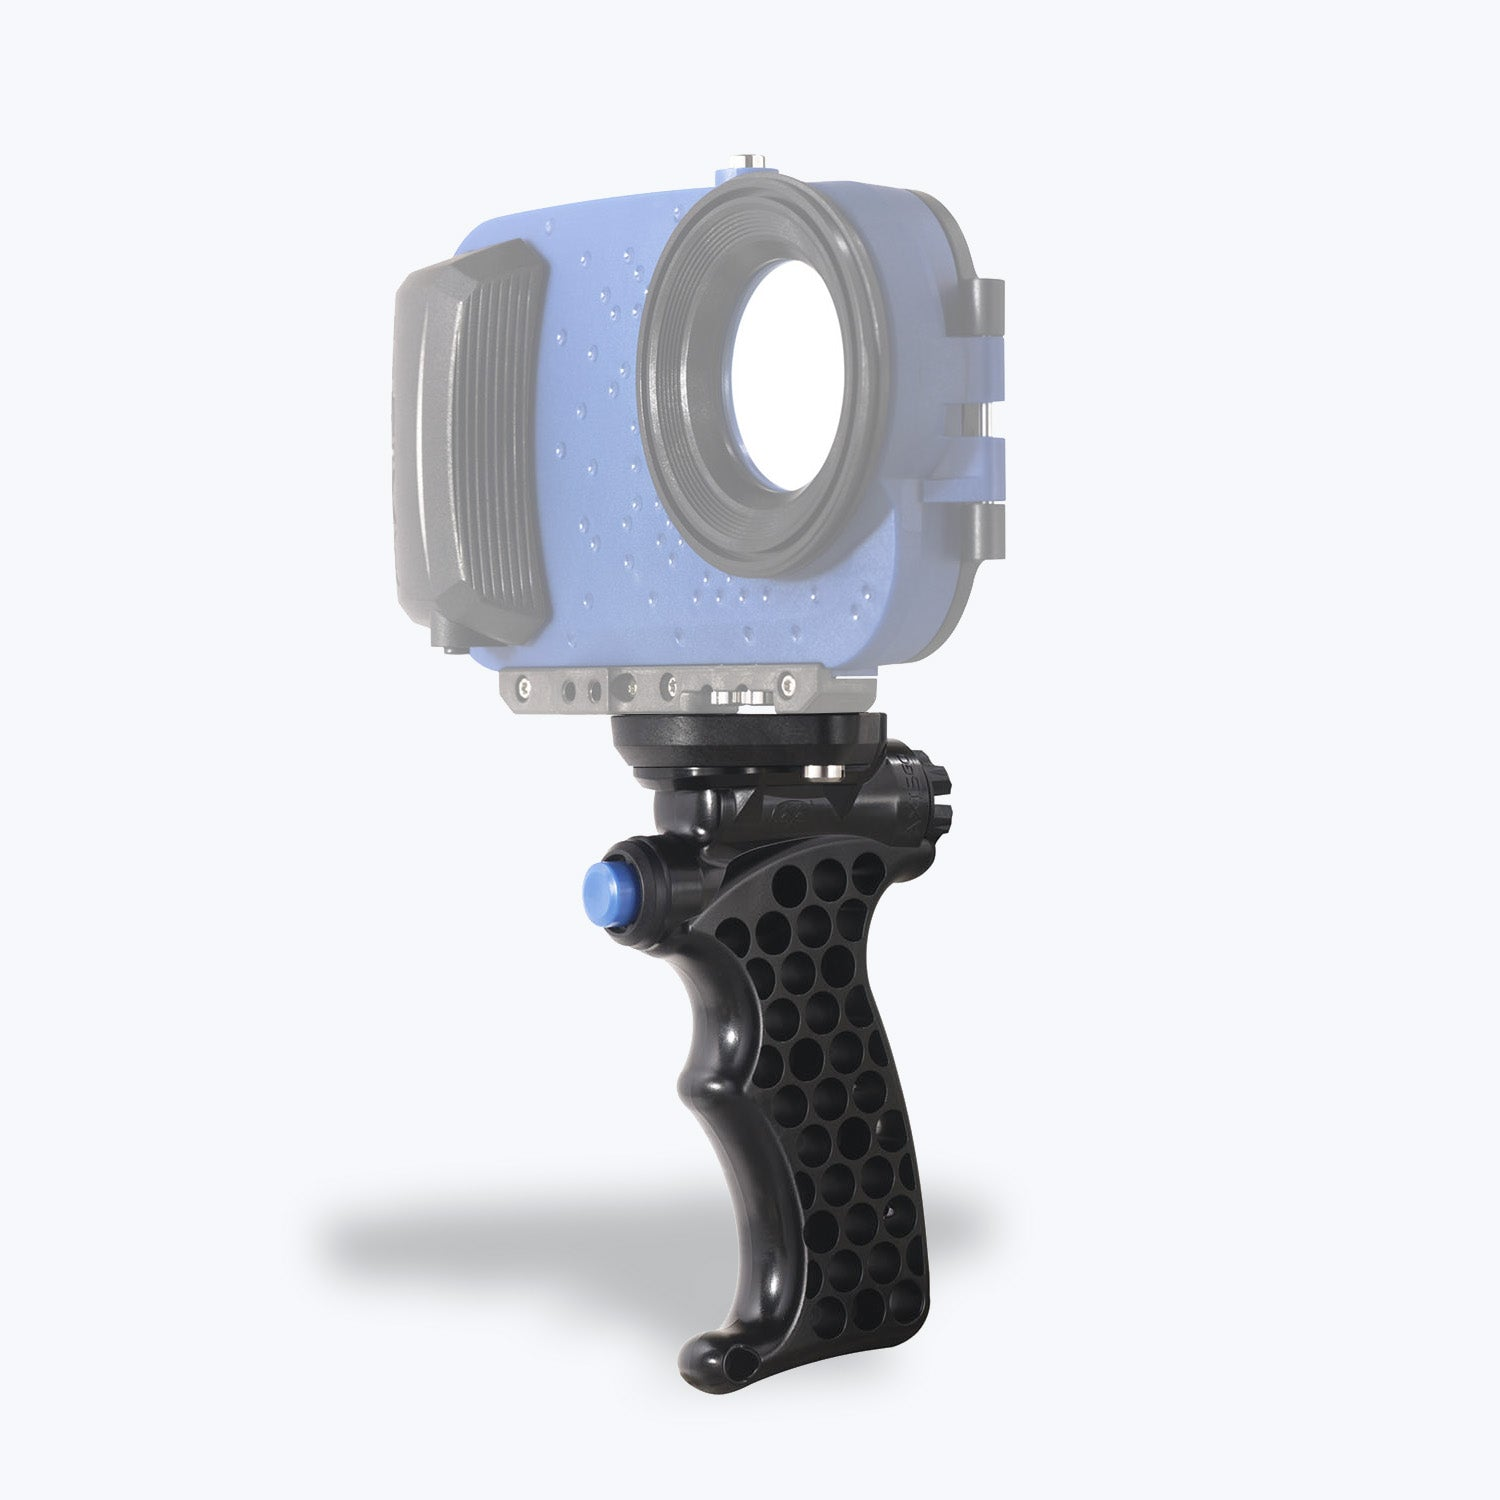 AxisGO bluetooth pistol grip